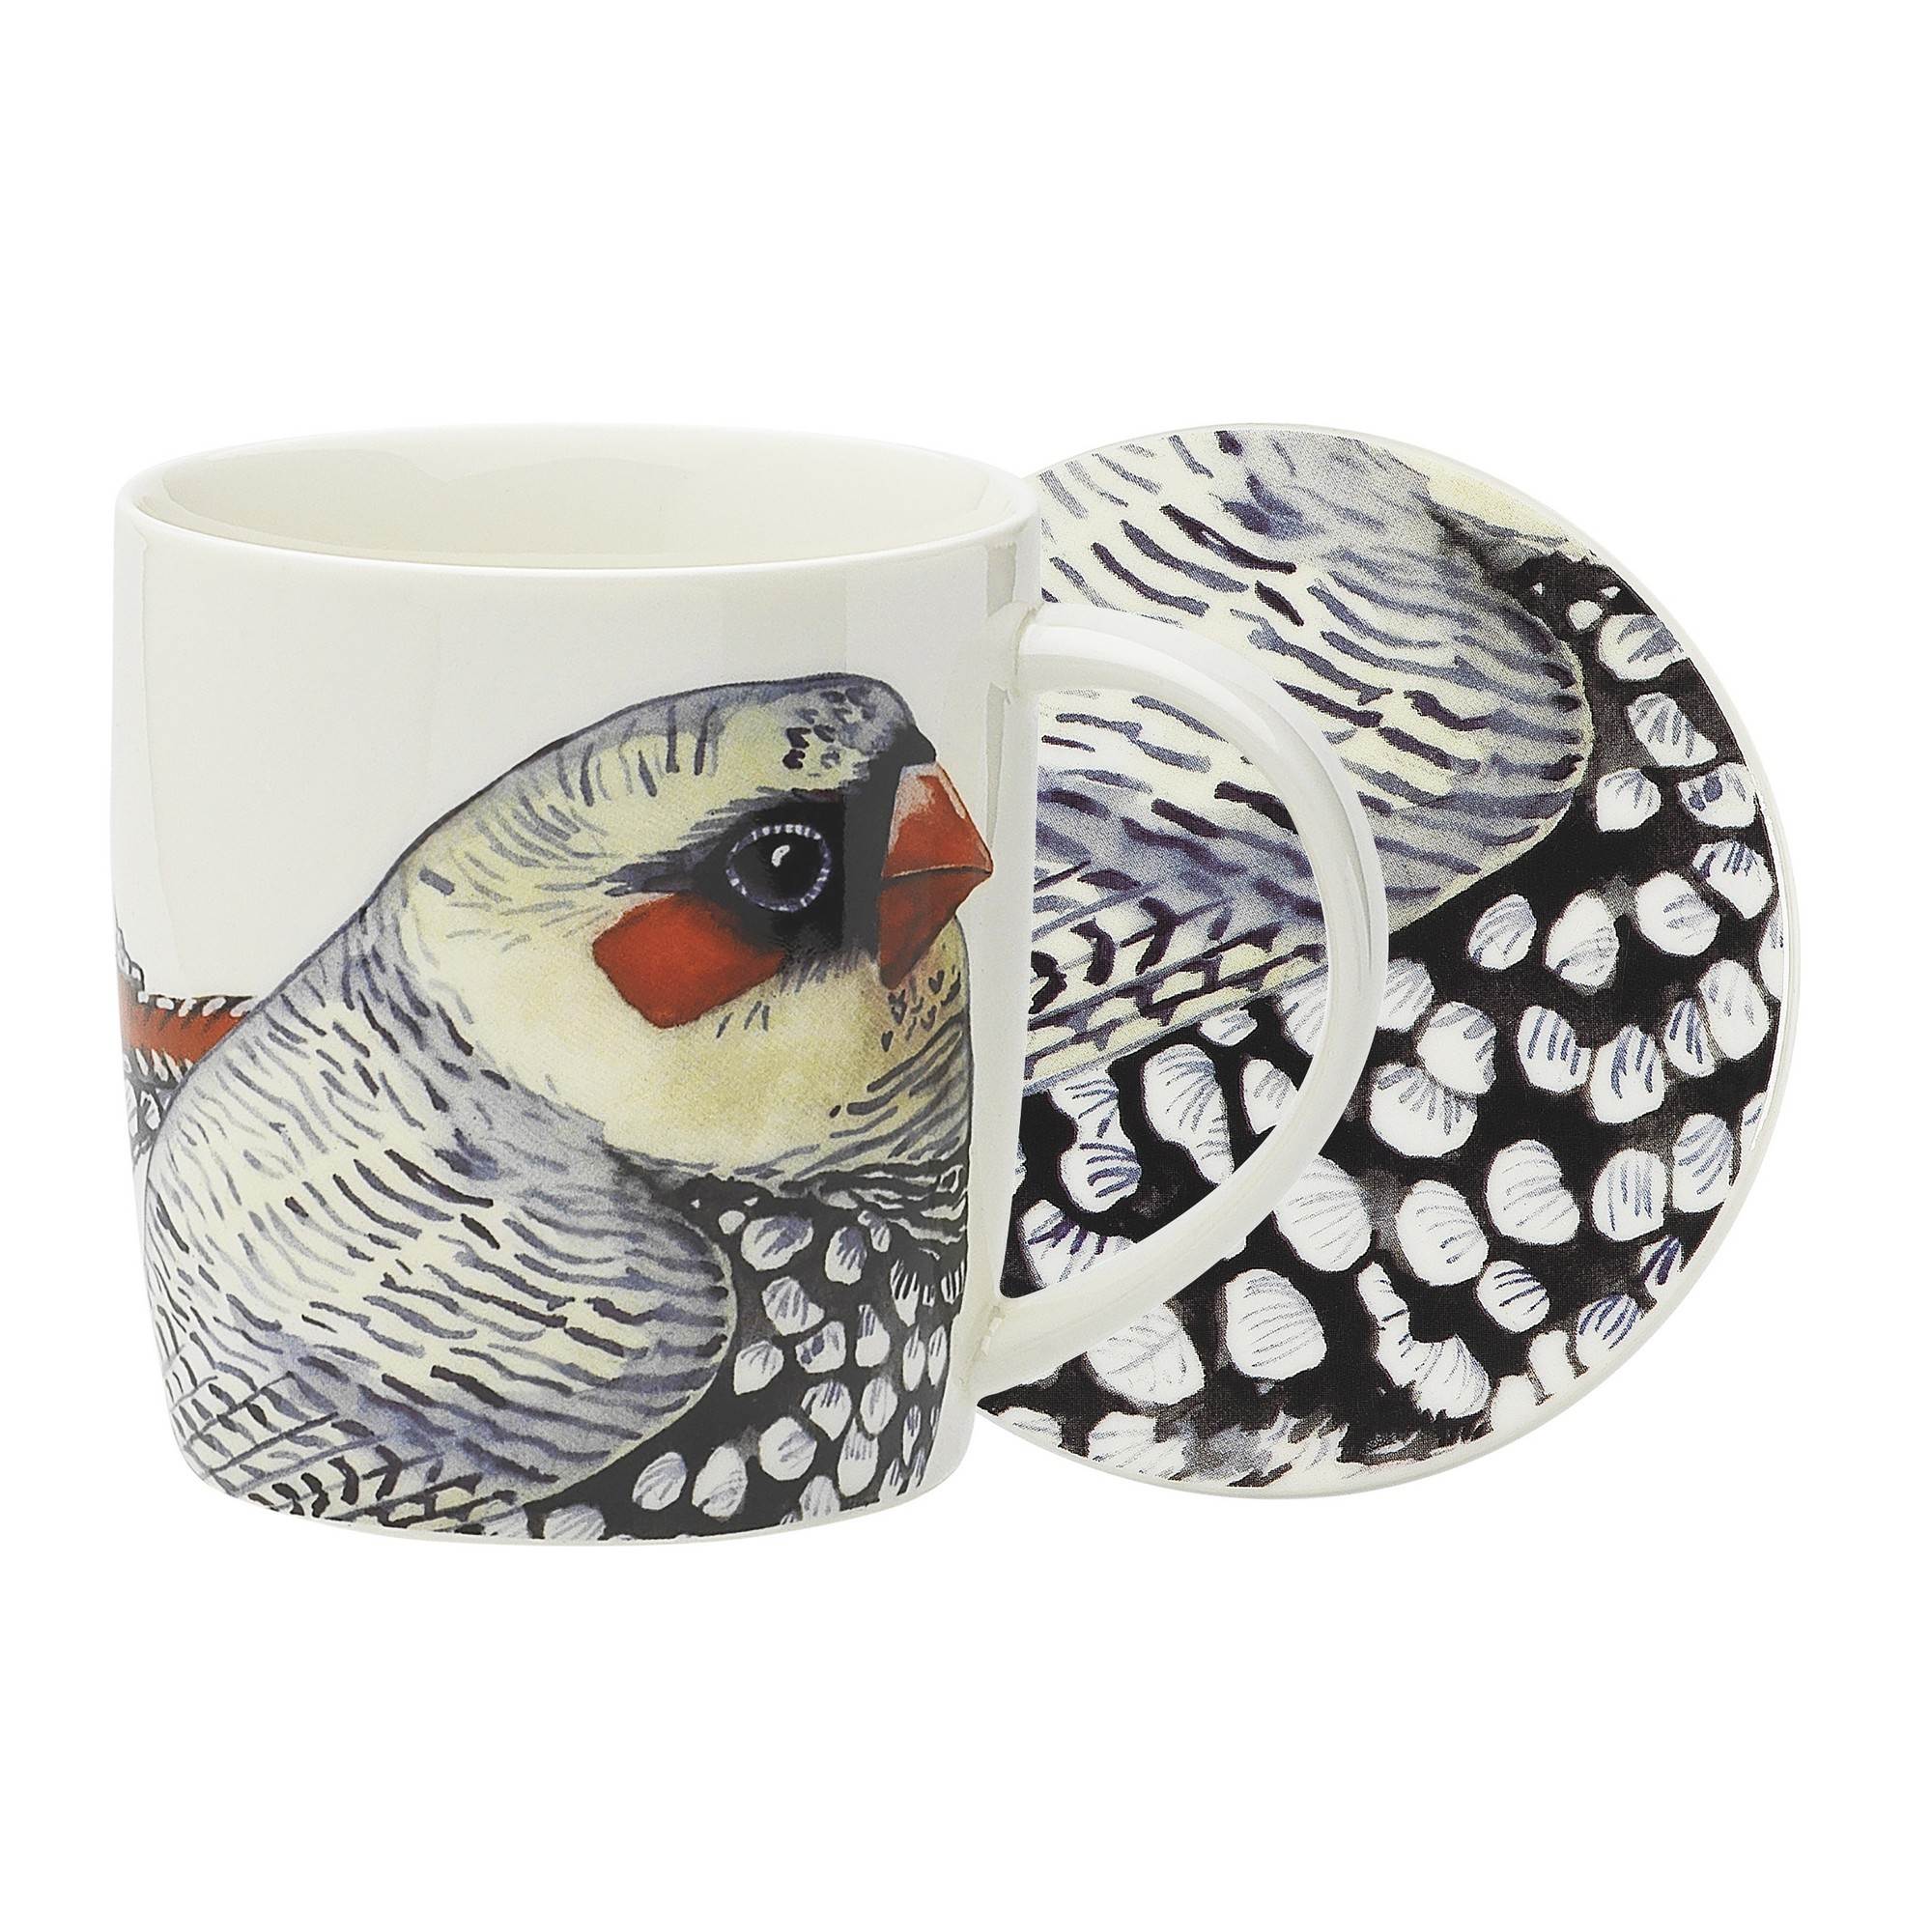 Ecology Paradiso New Bone China Mug & Coaster Set, Firetale